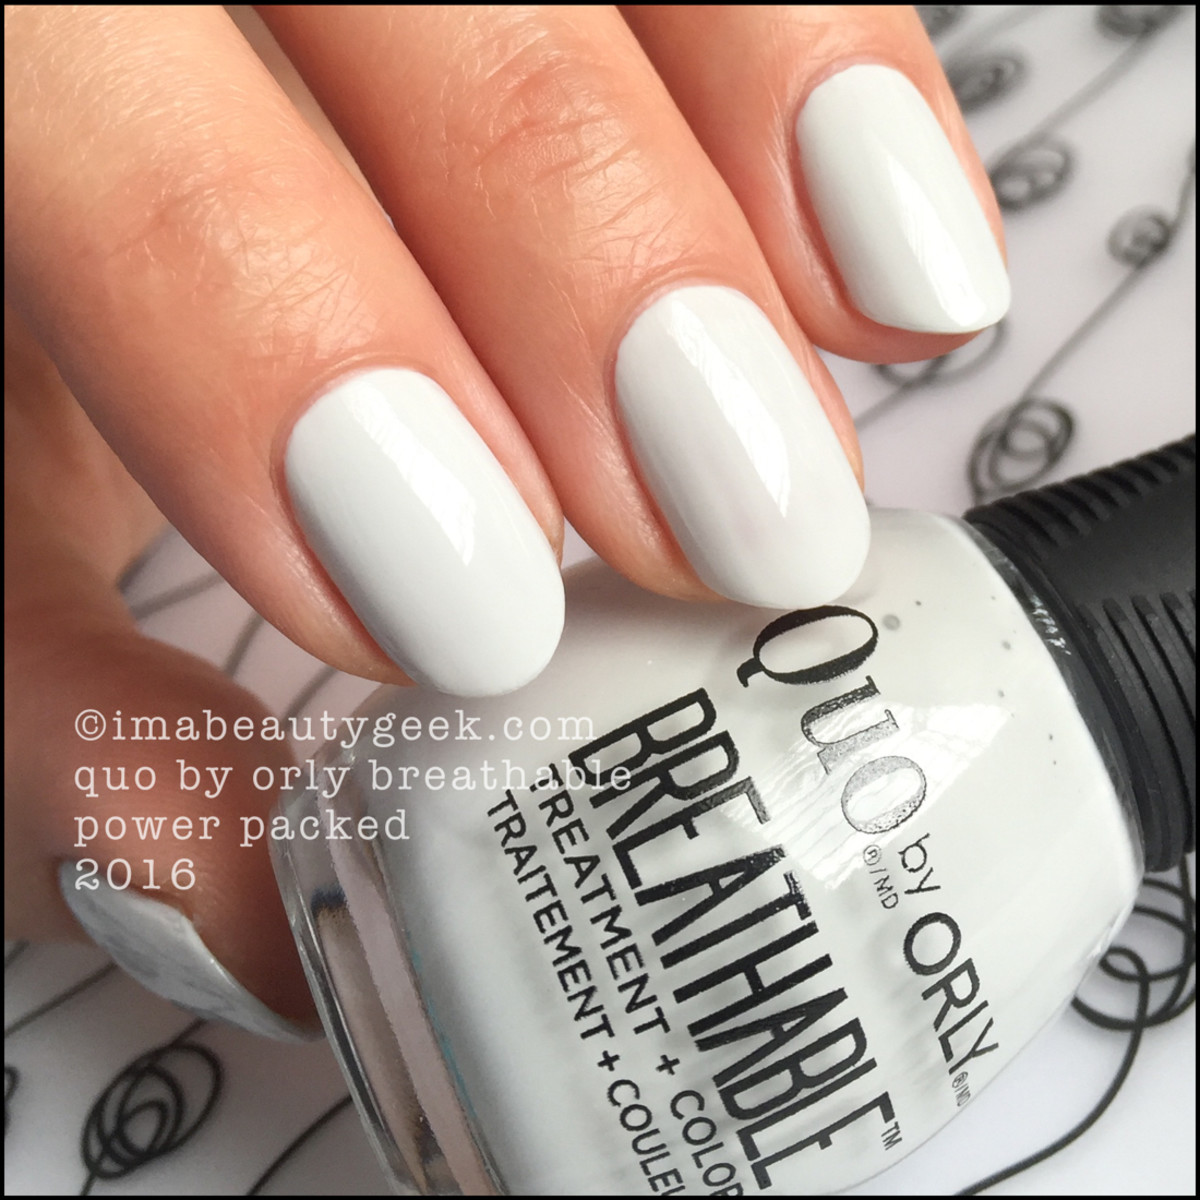 Orly Breathable Nail Polish_Quo by Orly Breathable Power Packed